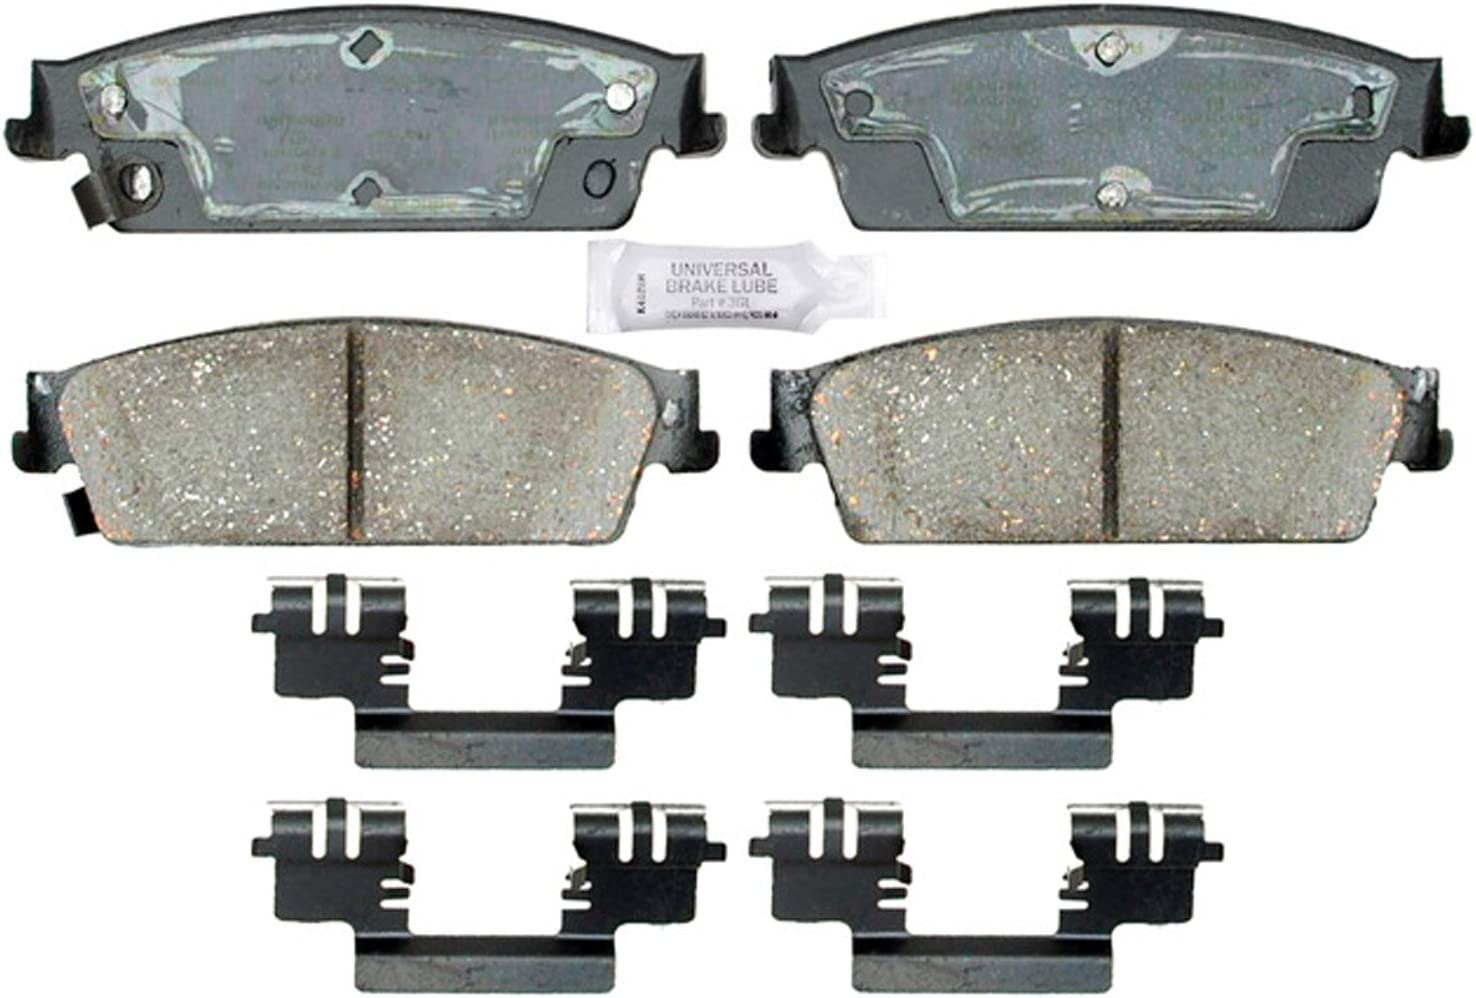 NEW Front and Rear Brake Pad Sets Kit ACDelco For Chevrolet Cadillac GMC 2007